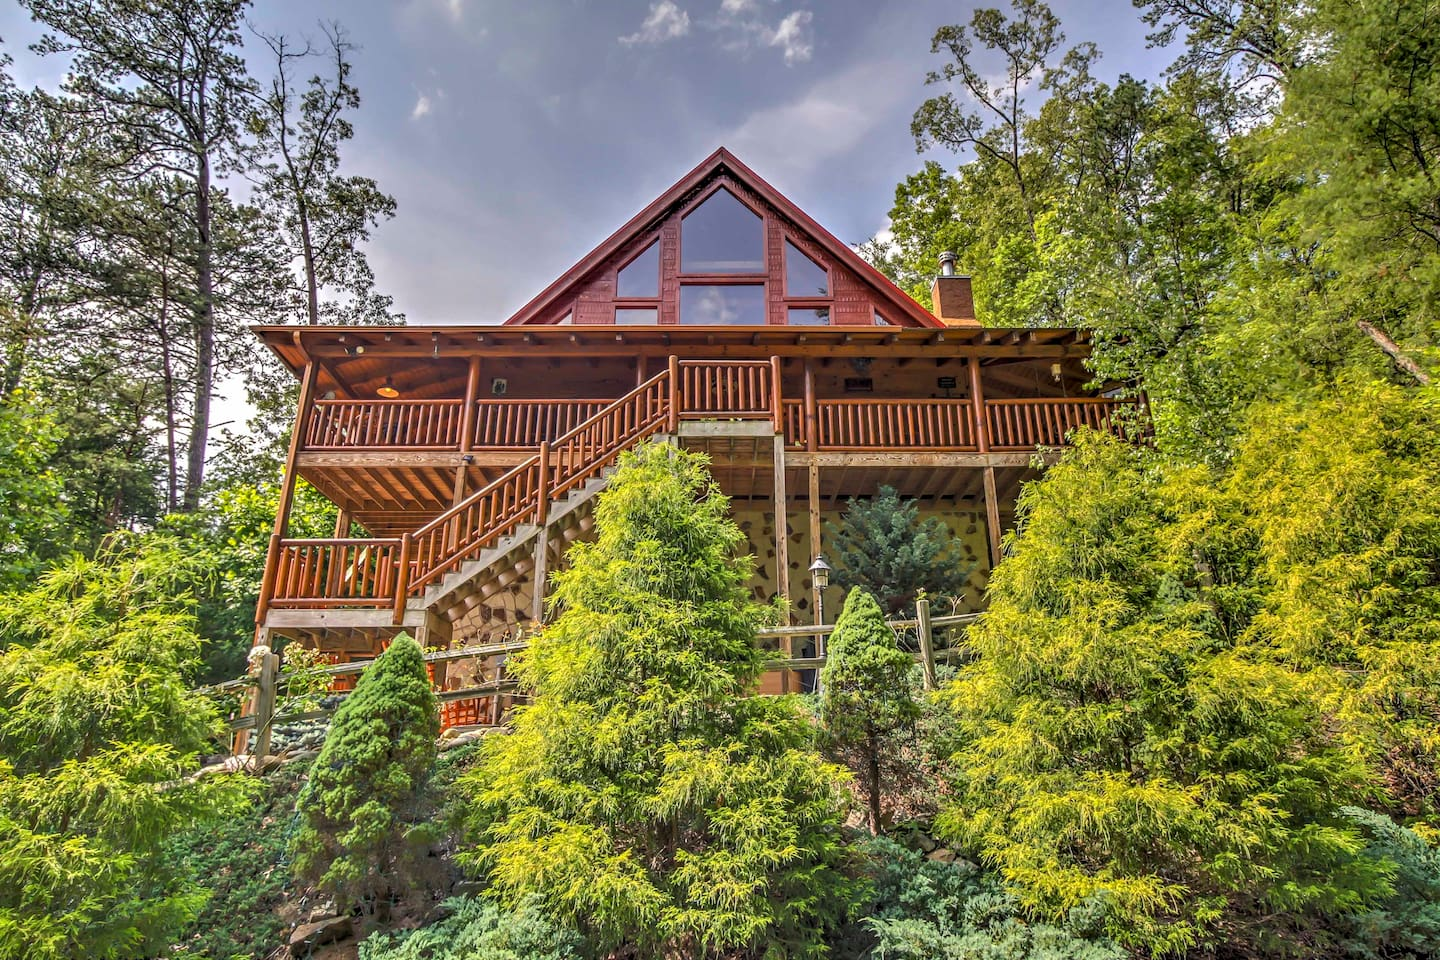 This large Gatlinburg vacation rental cabin is nestled in a beautiful forest.